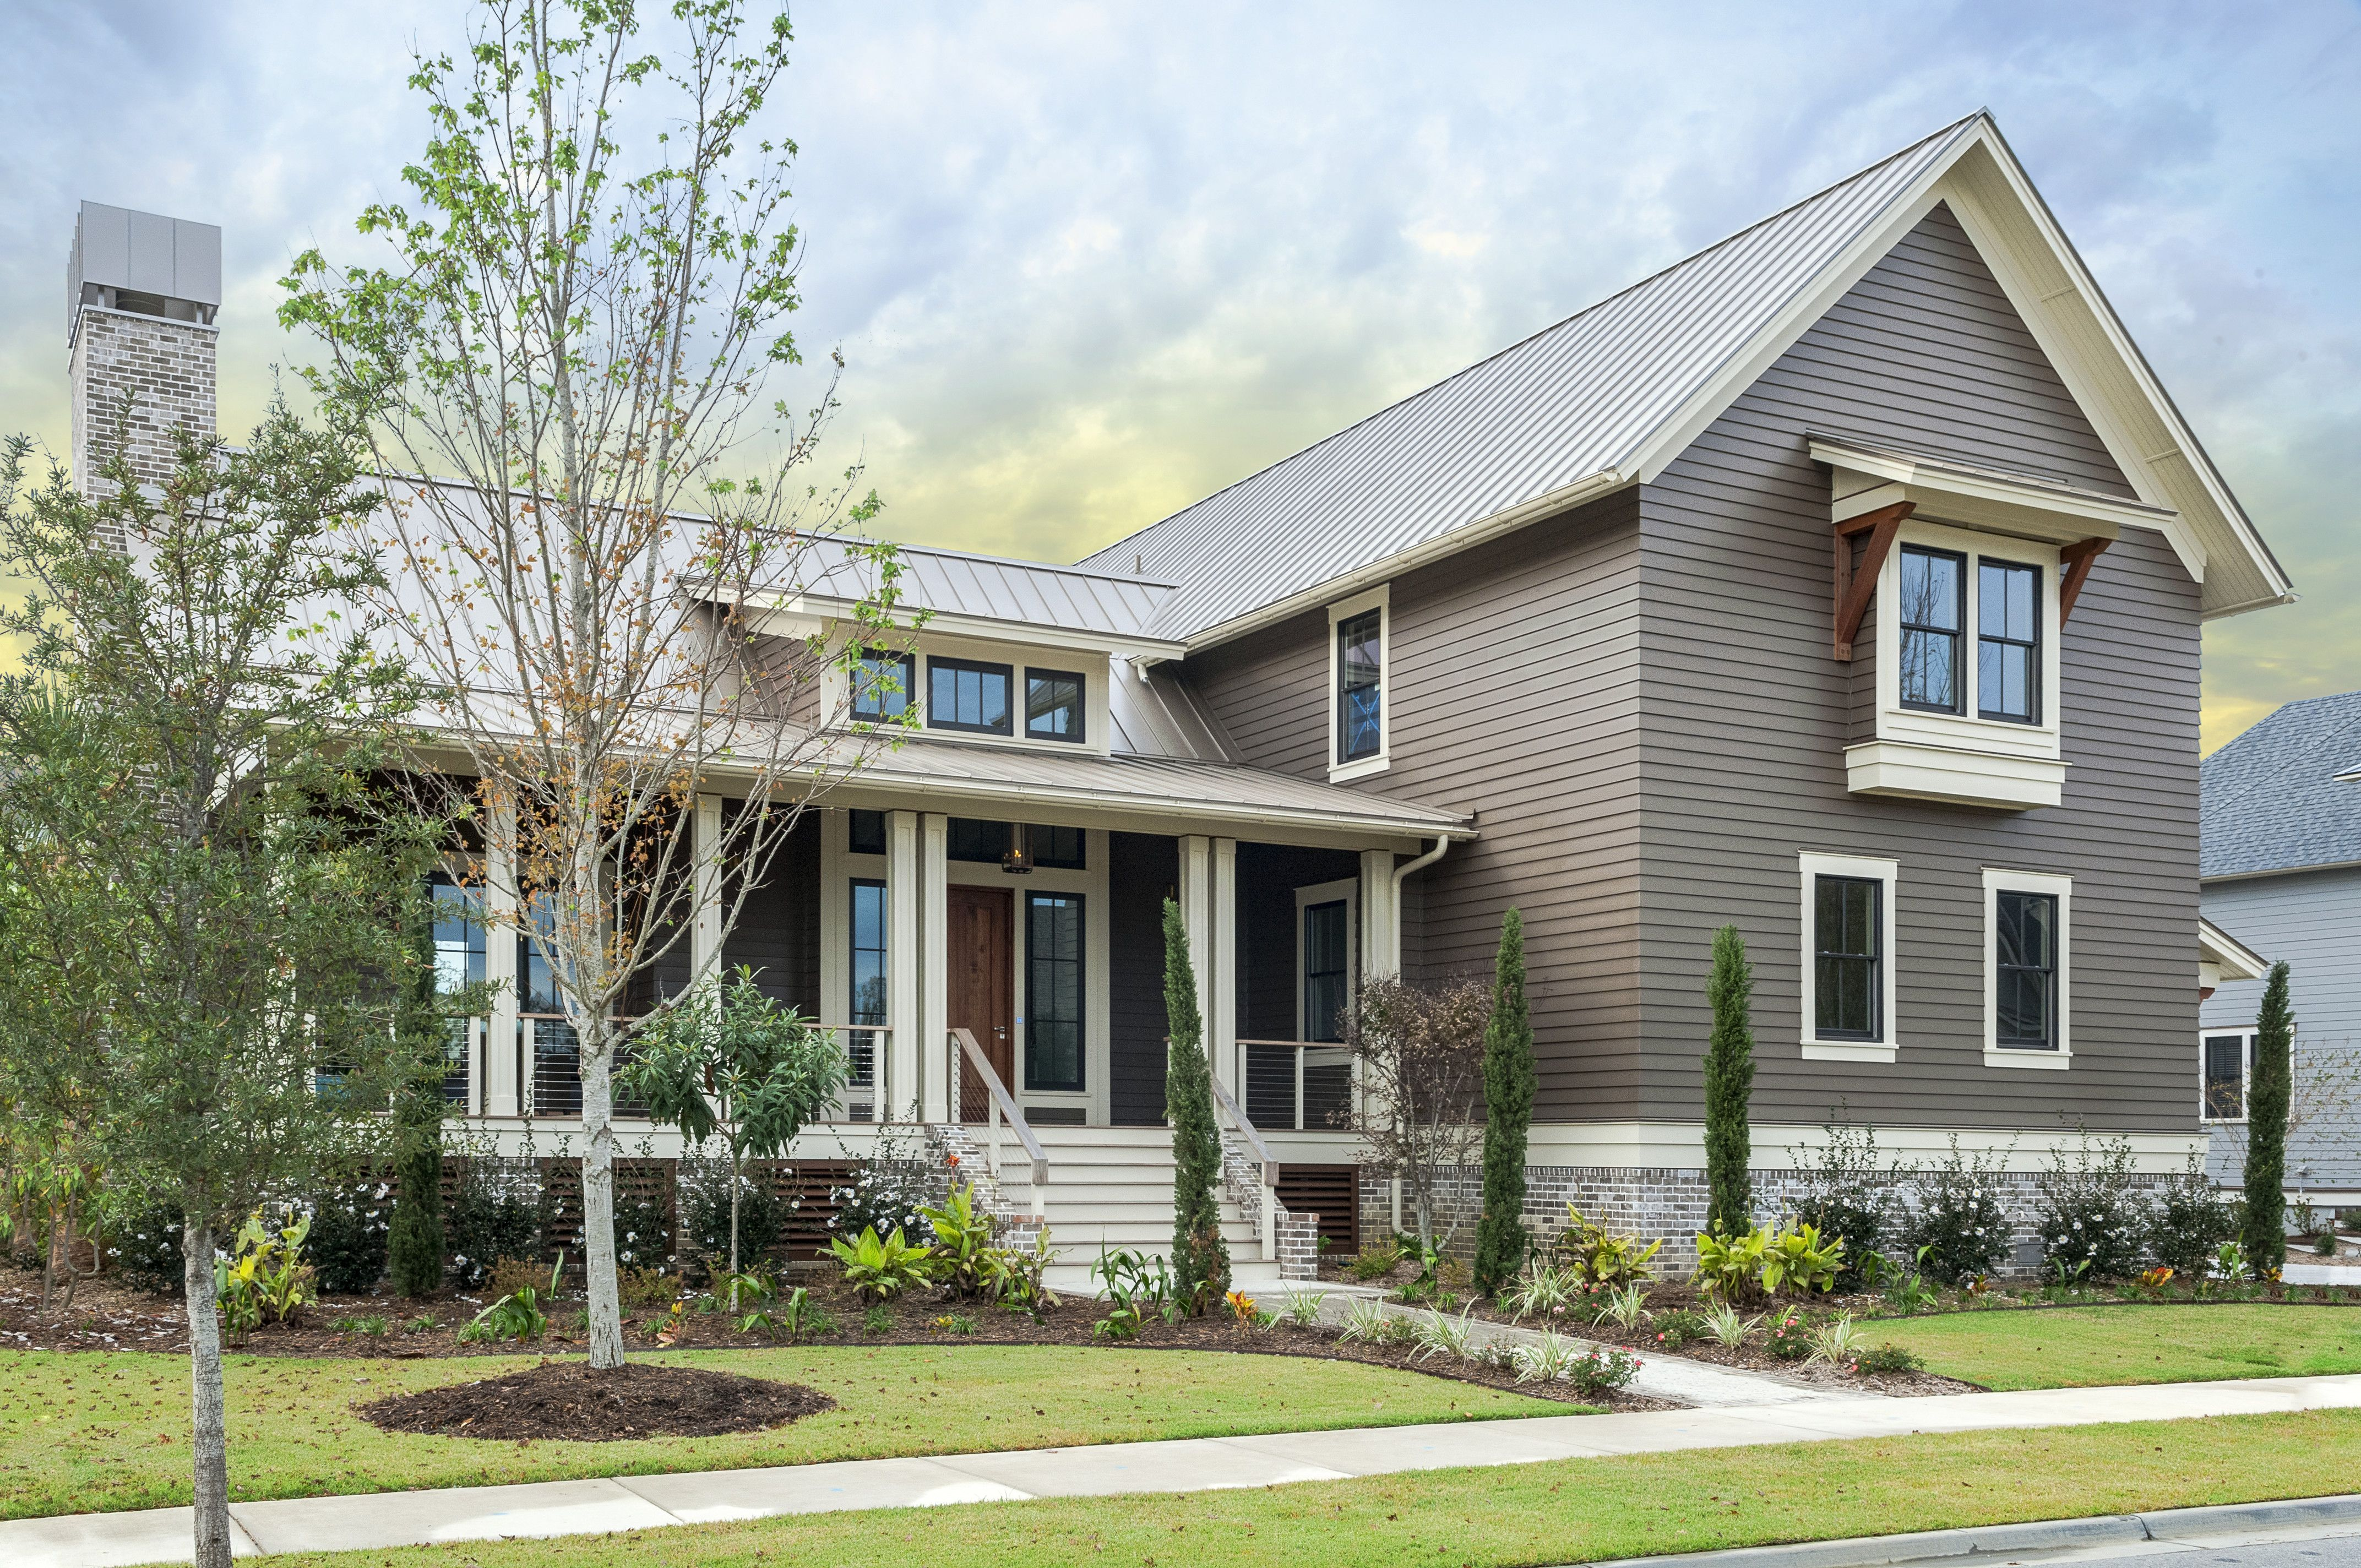 James Hardie Aspyre Reveal System Exterior Product For Shiplap Look Siding Options Hardie Siding Siding